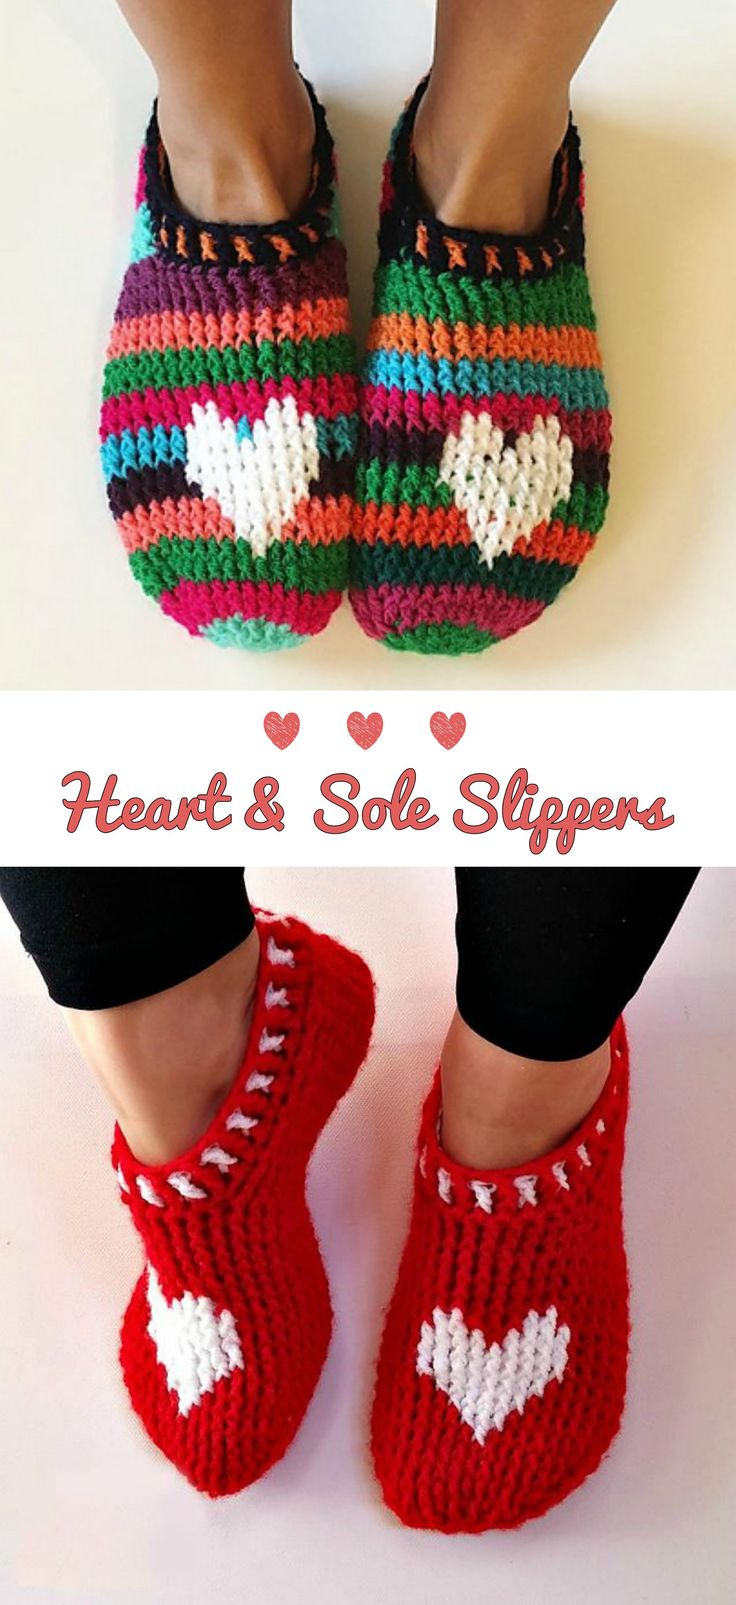 Crochet Heart & Sole Slippers